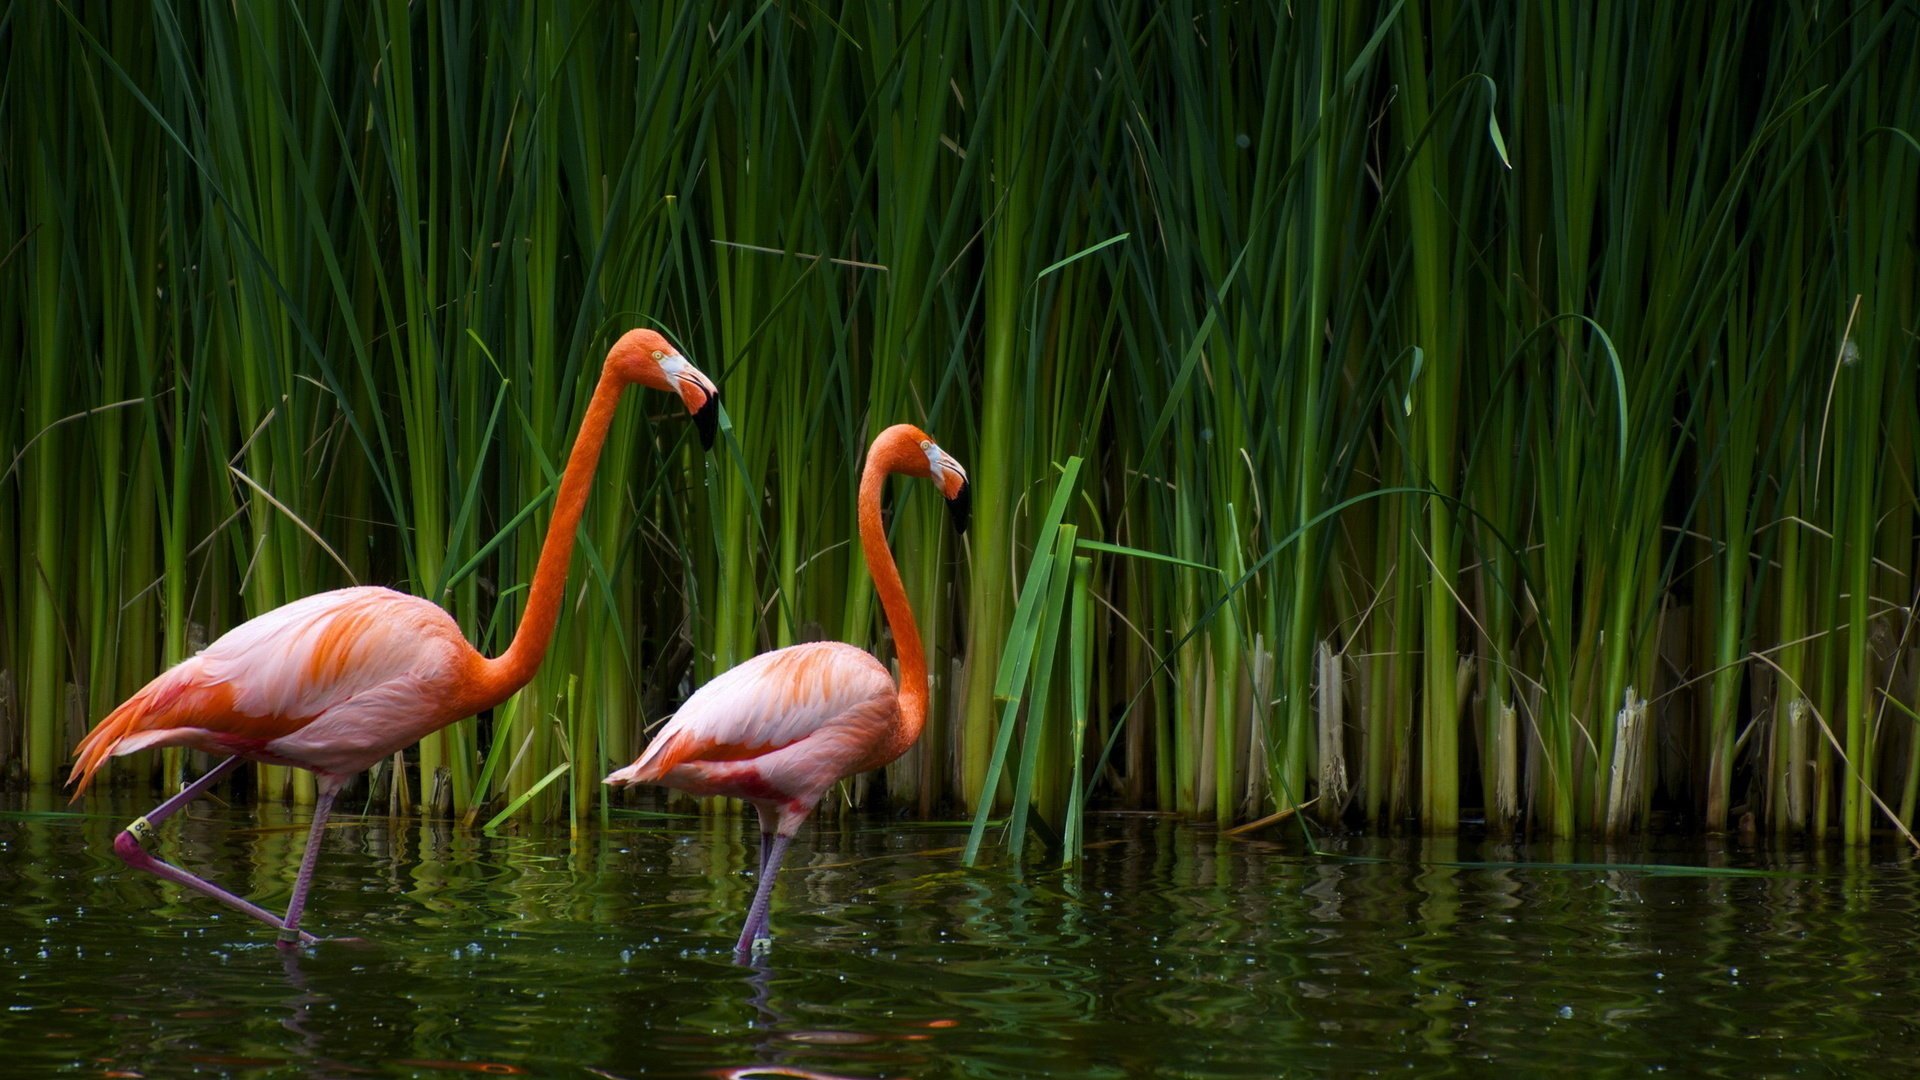 Download hd 1080p Flamingo PC wallpaper ID:66609 for free